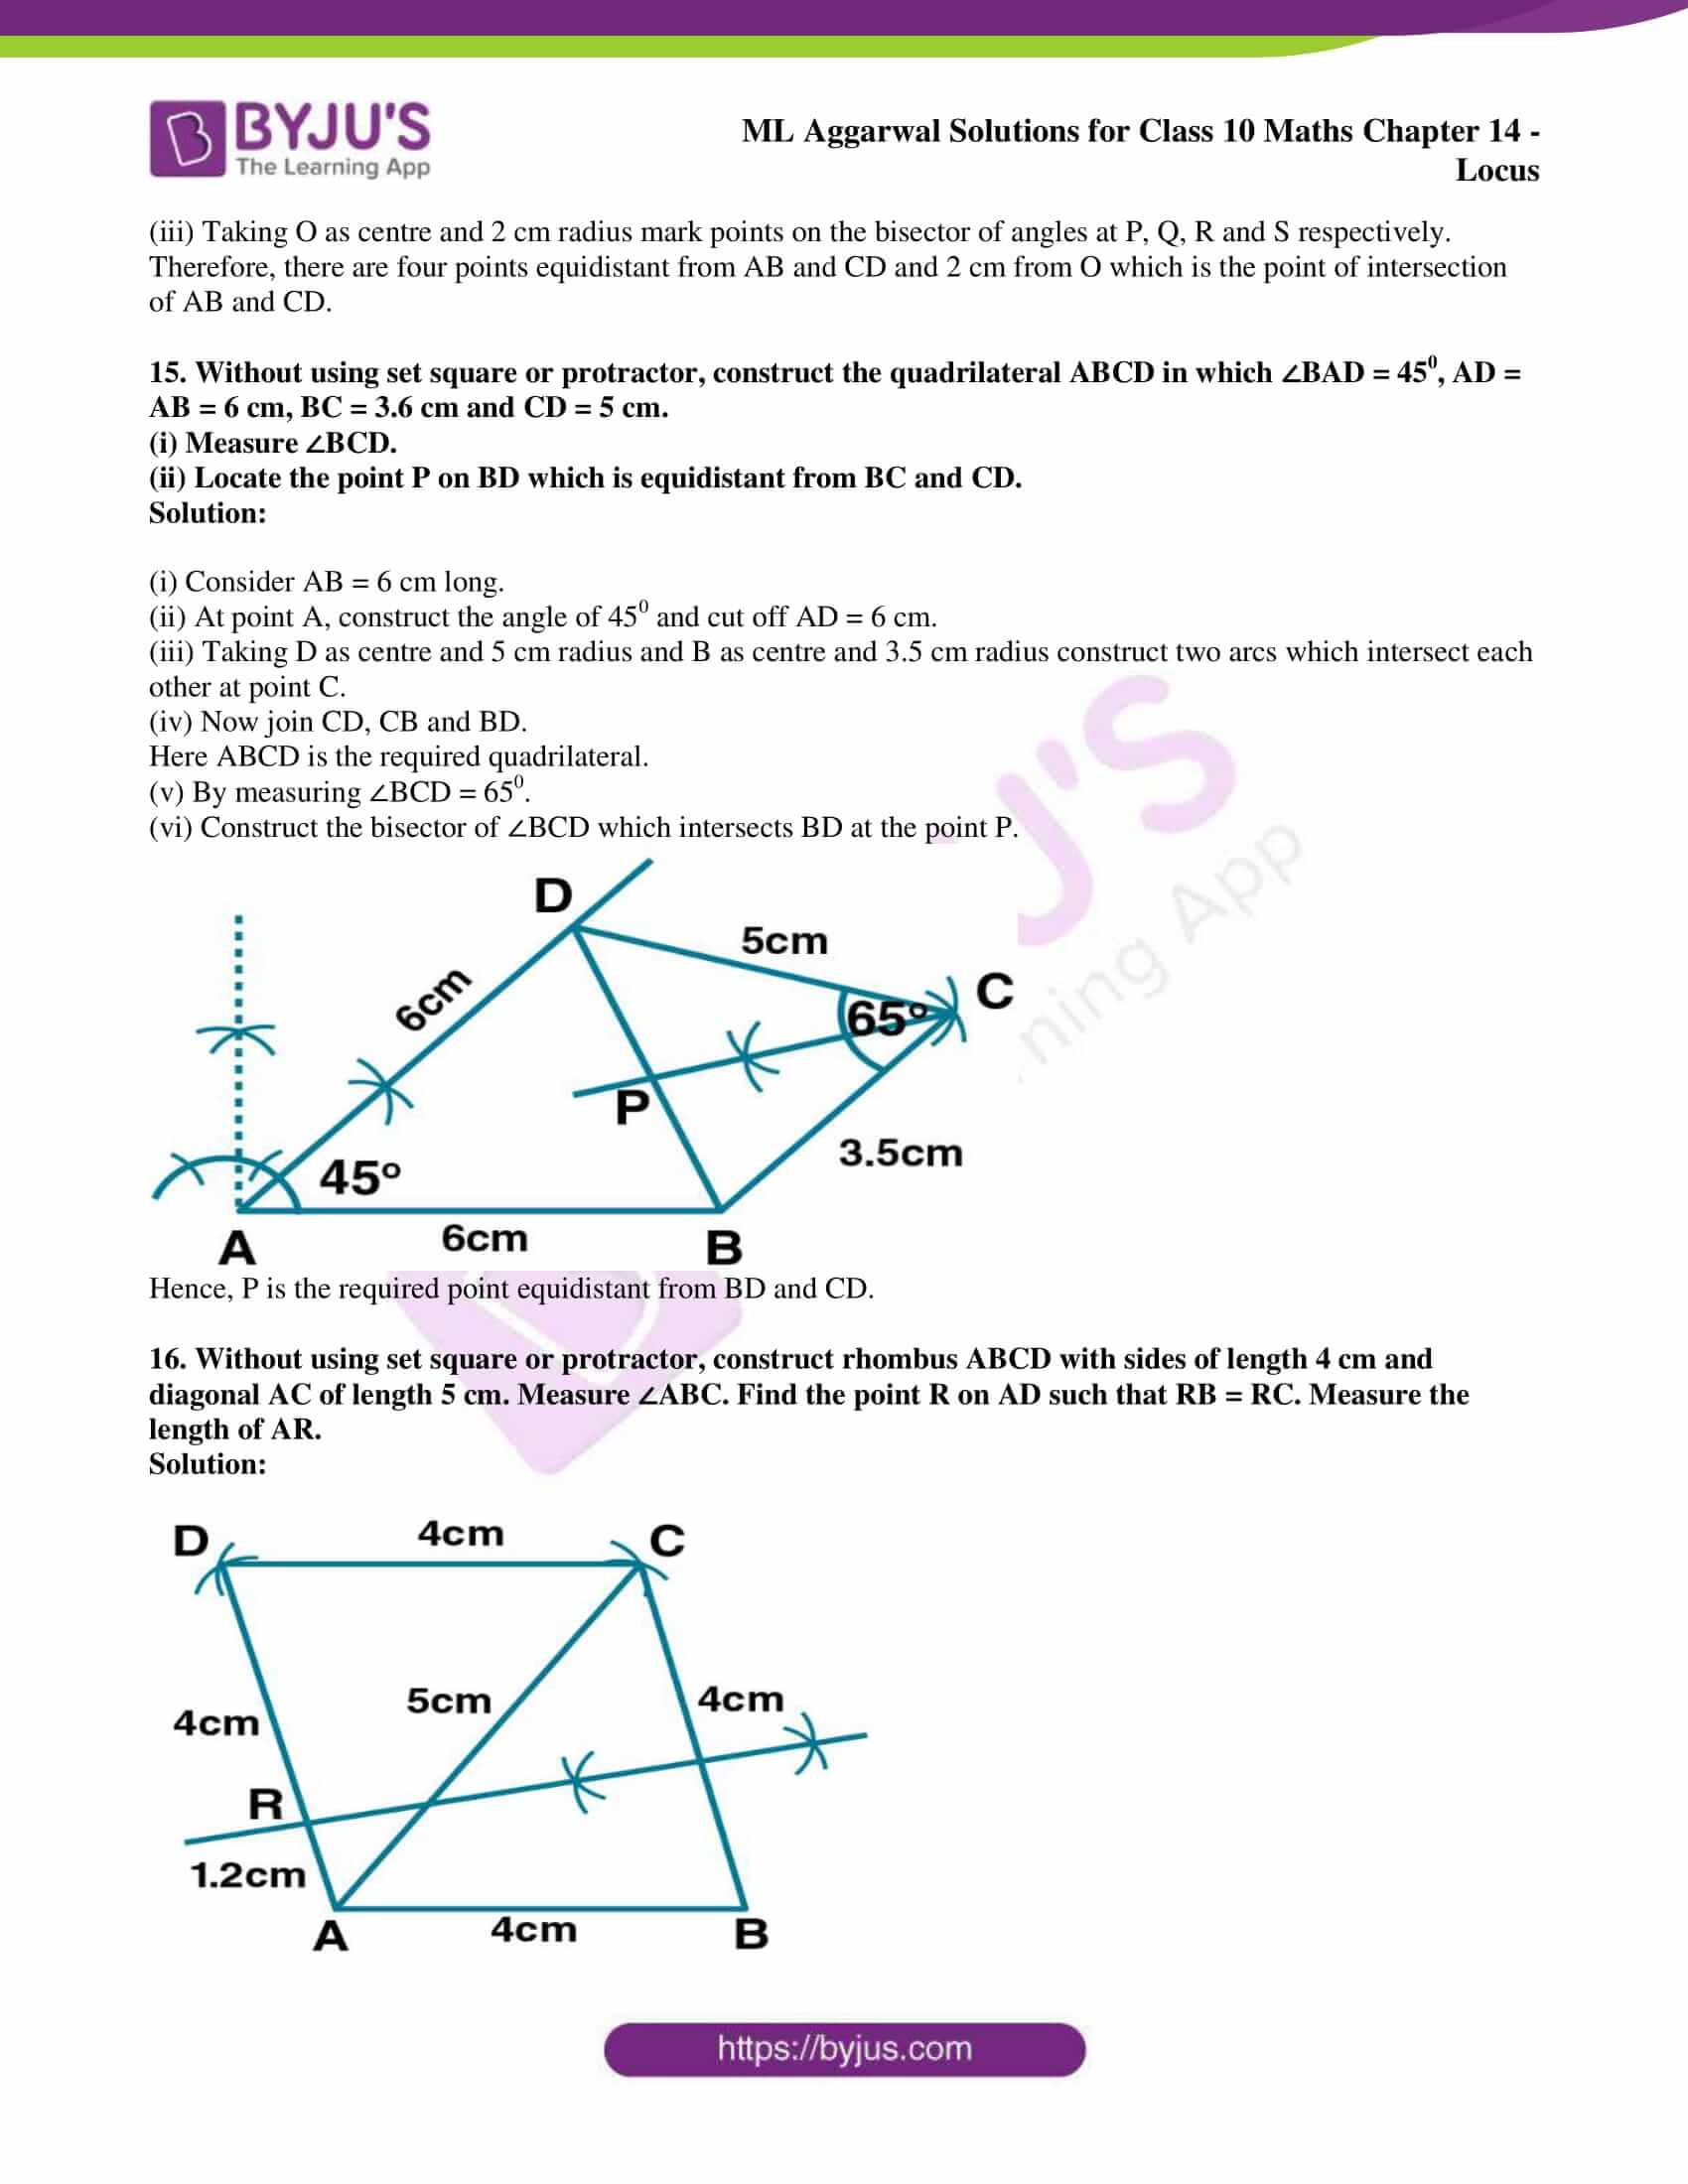 ml aggarwal solutions for class 10 maths chapter 14 14